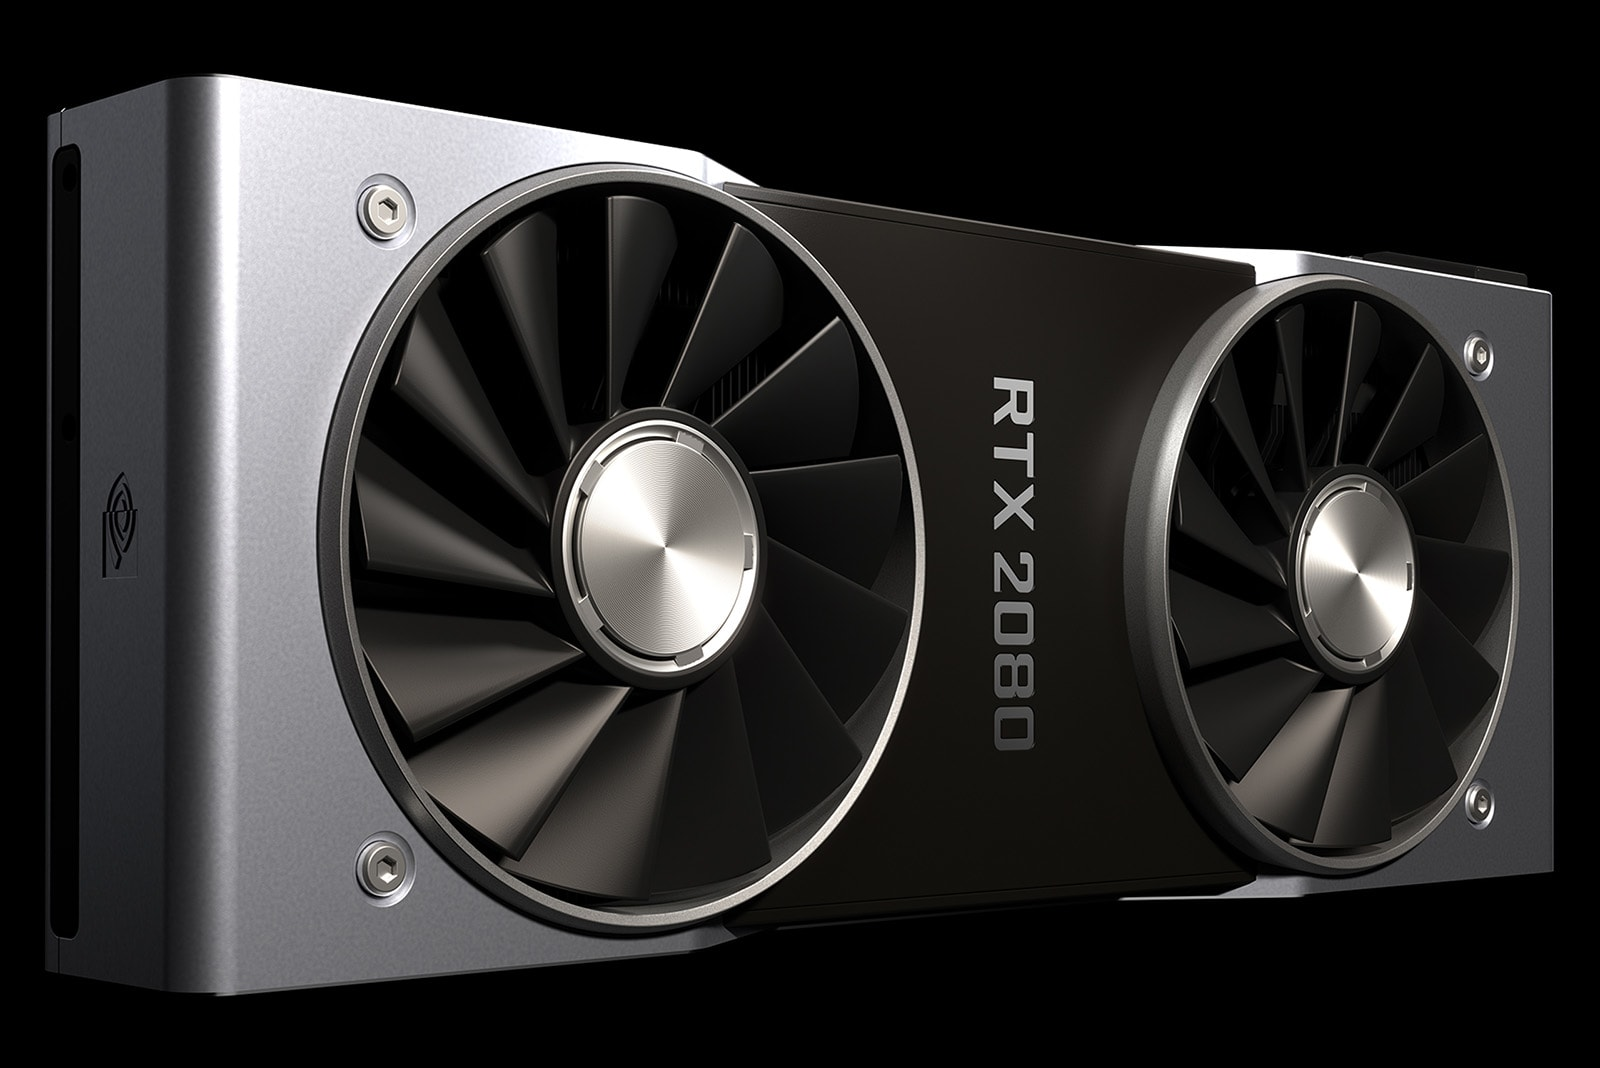 NVIDIA's GeForce RTX 2080 leapfrogs the 1080 Ti for $800